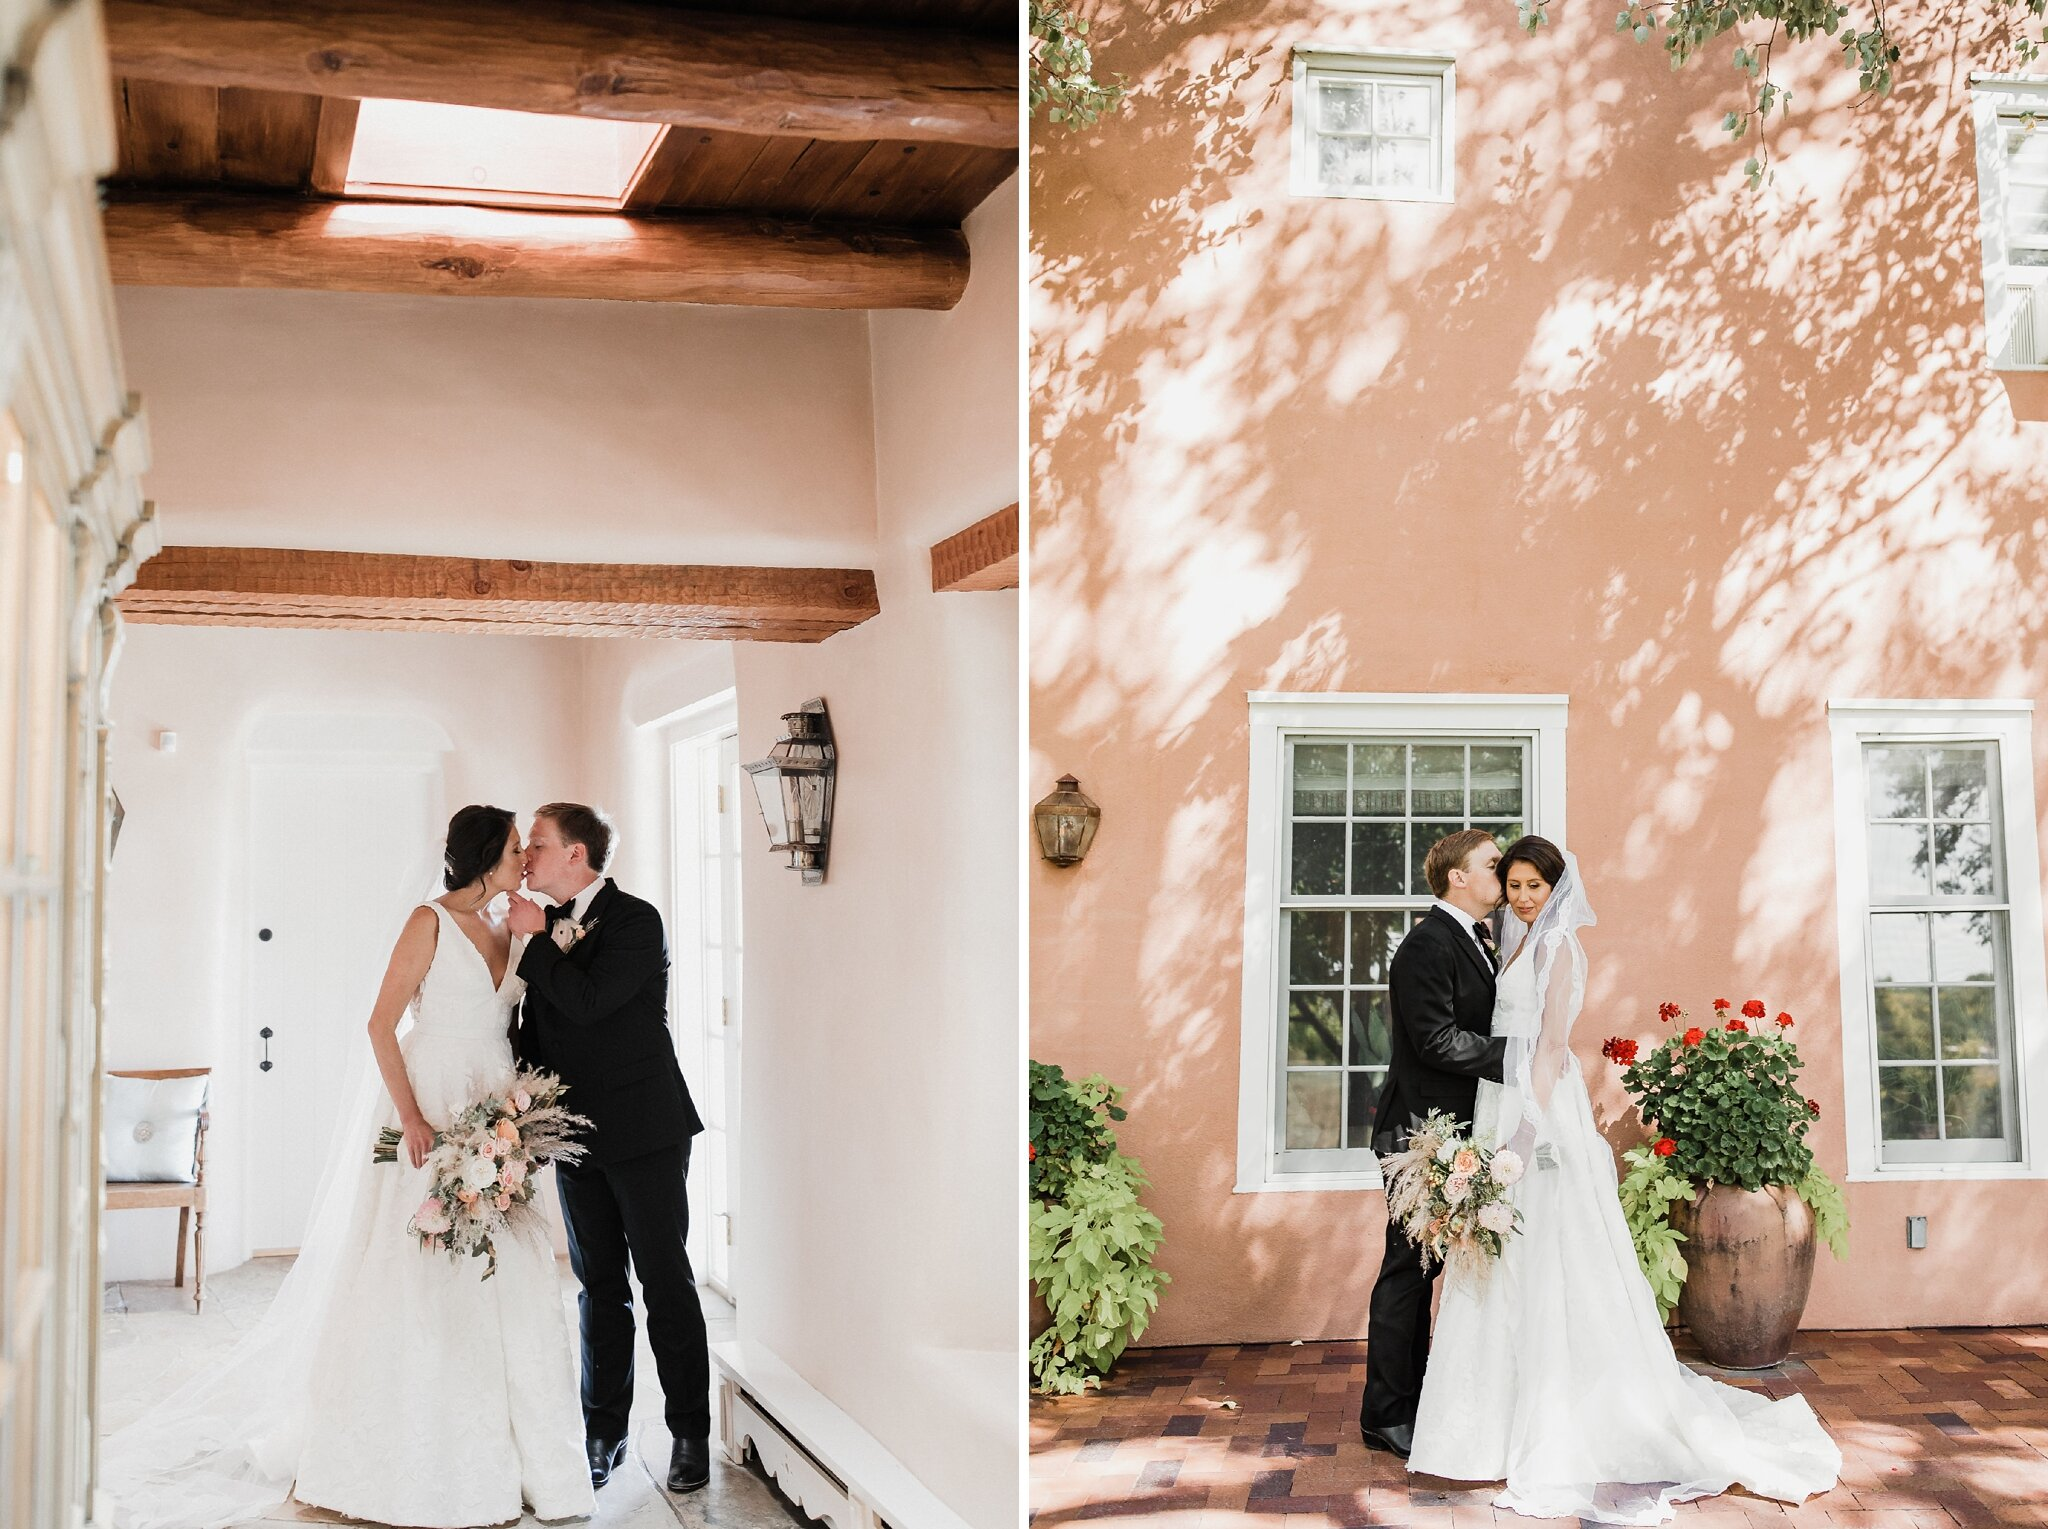 Alicia+lucia+photography+-+albuquerque+wedding+photographer+-+santa+fe+wedding+photography+-+new+mexico+wedding+photographer+-+new+mexico+wedding+-+wedding+-+bridal+gown+-+wedding+gown+-+ballgown+wedding+gown+-+ballgown+bridal+gown_0070.jpg